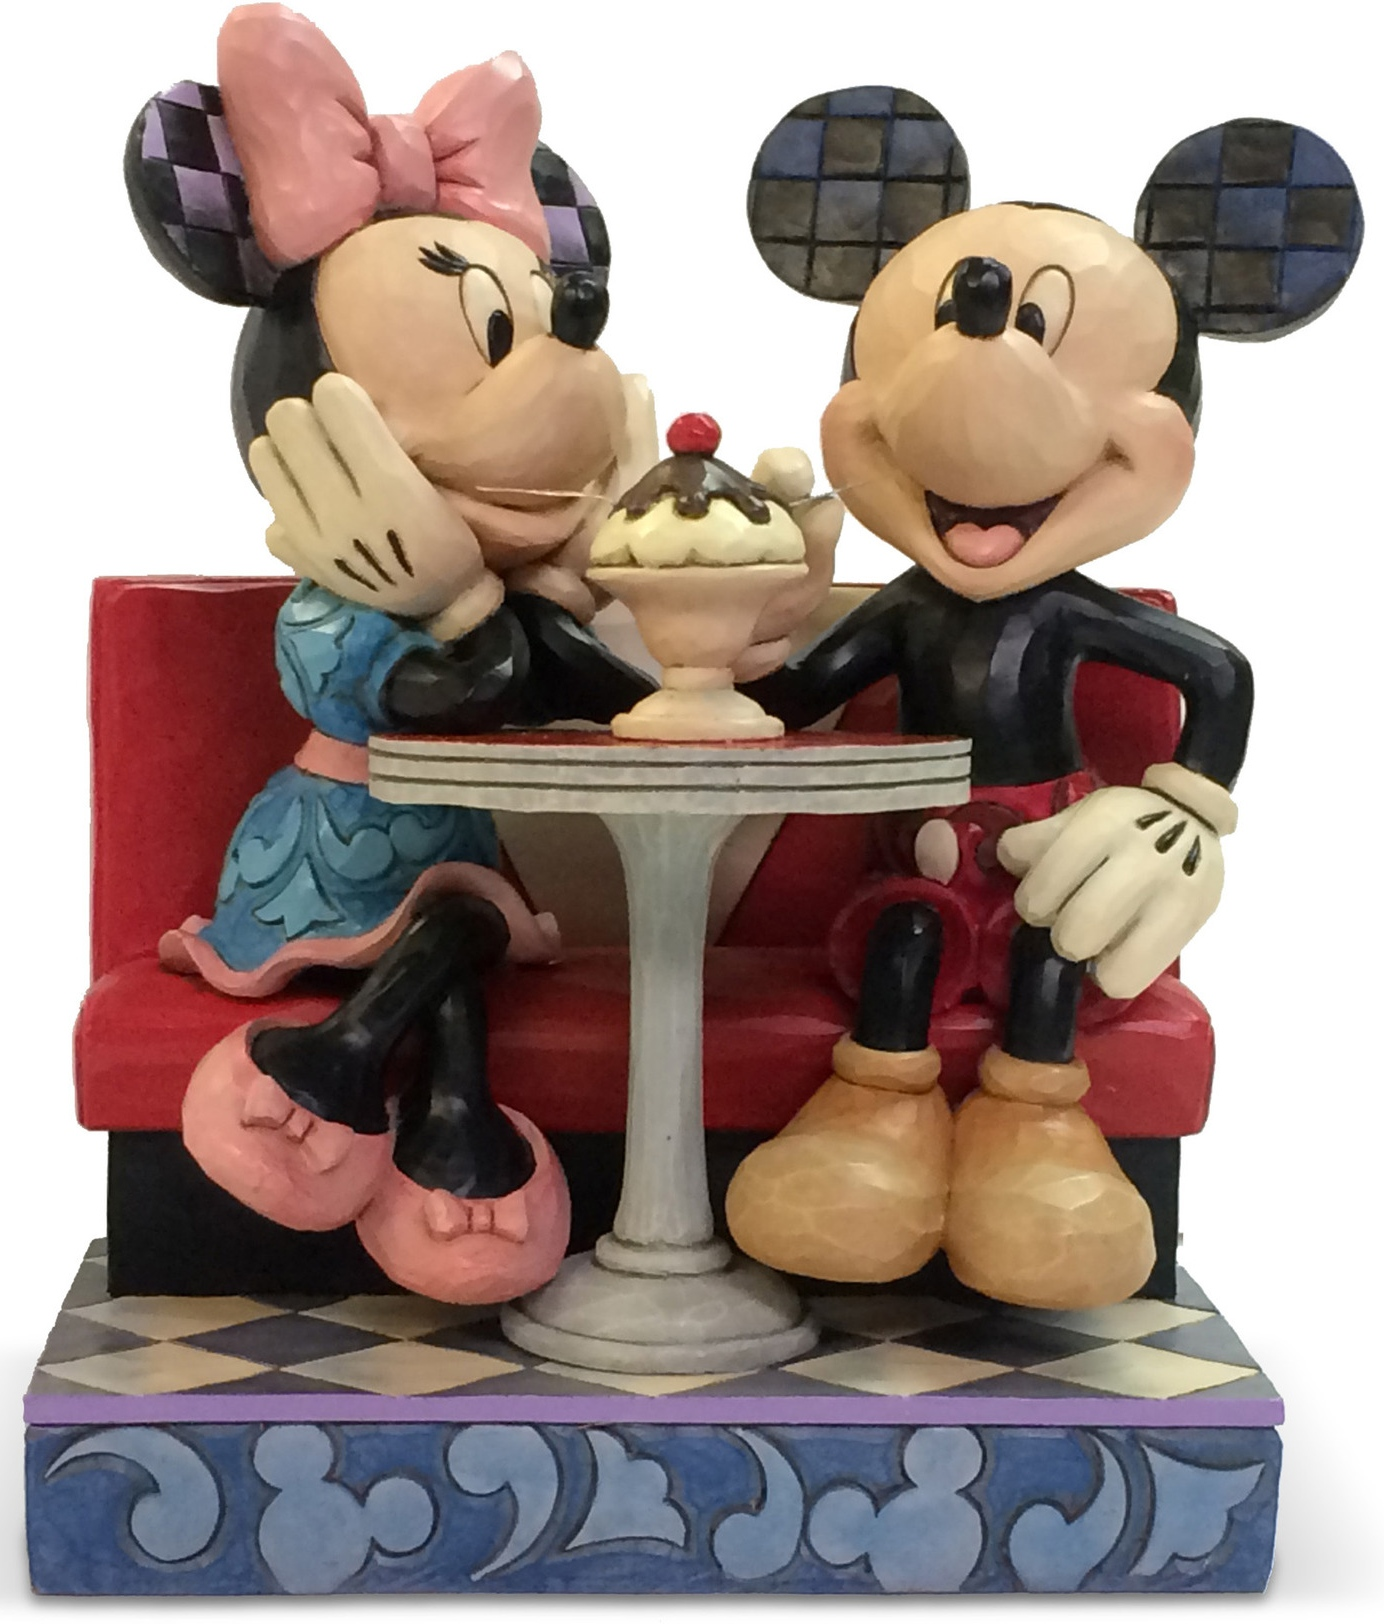 Jim Shore Disney 4059751 Soda Fountain Mickey Figurine